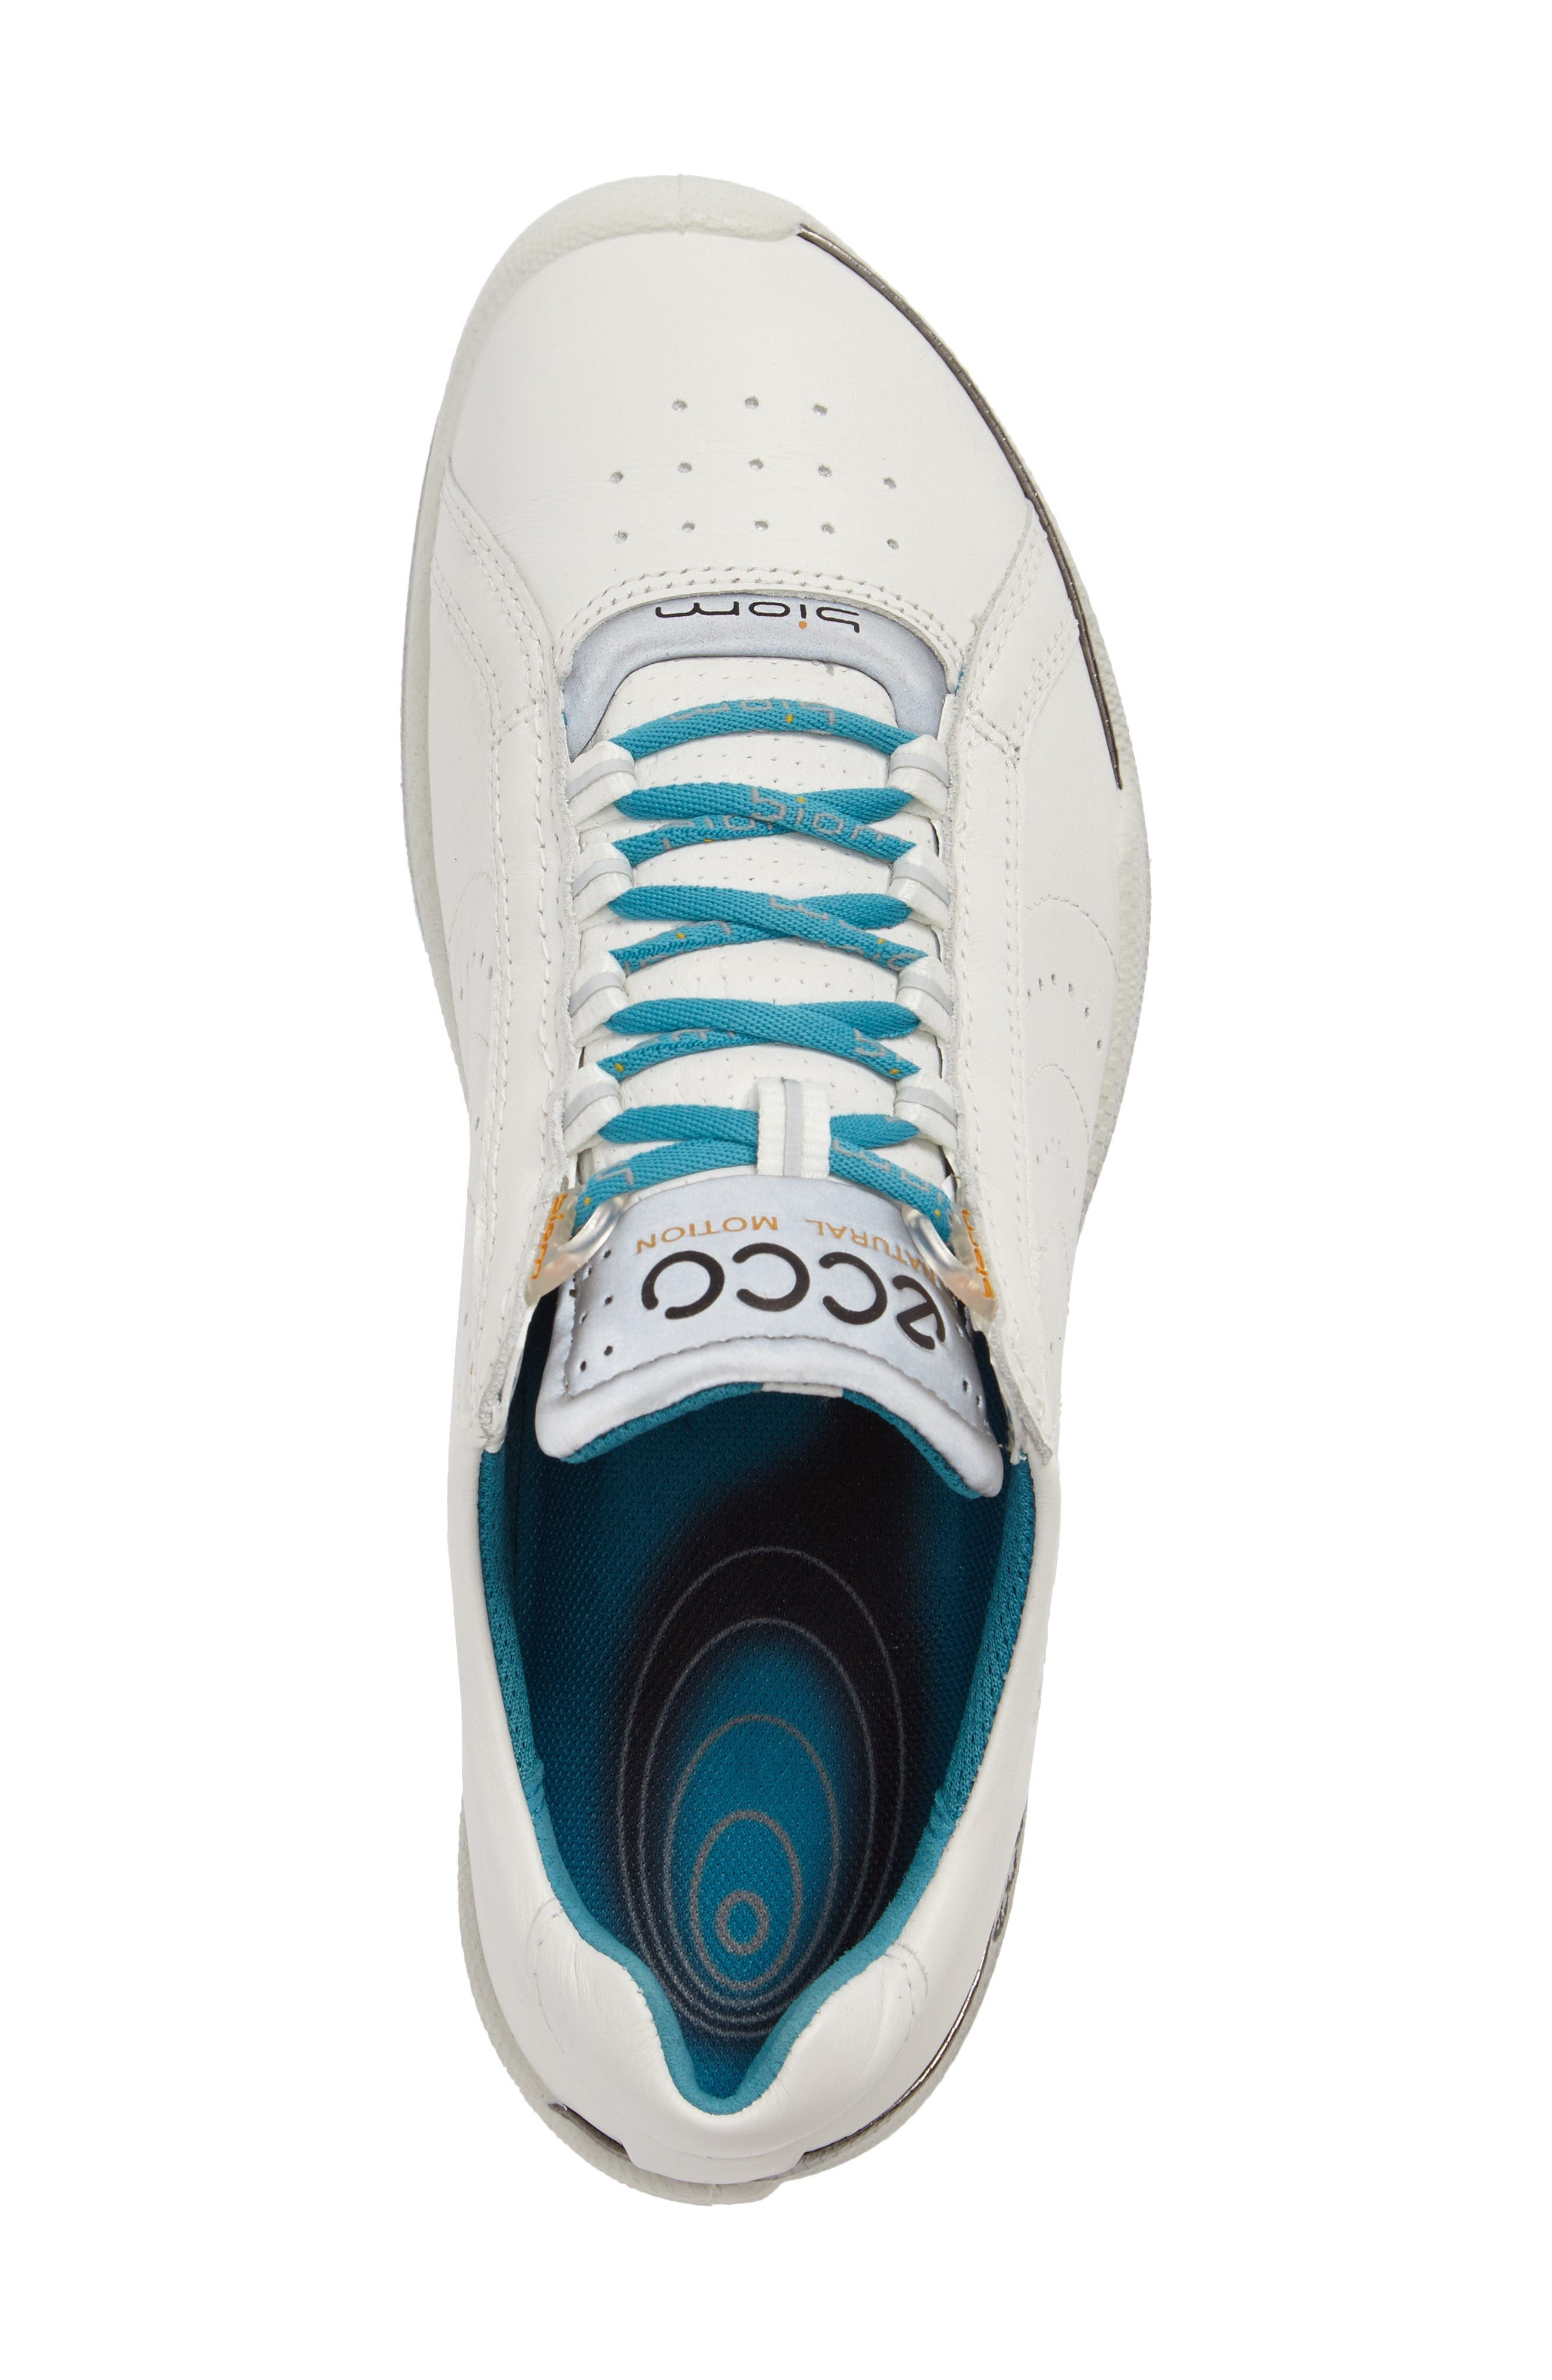 Biom 2 Waterproof Golf Shoe,                             Alternate thumbnail 5, color,                             White